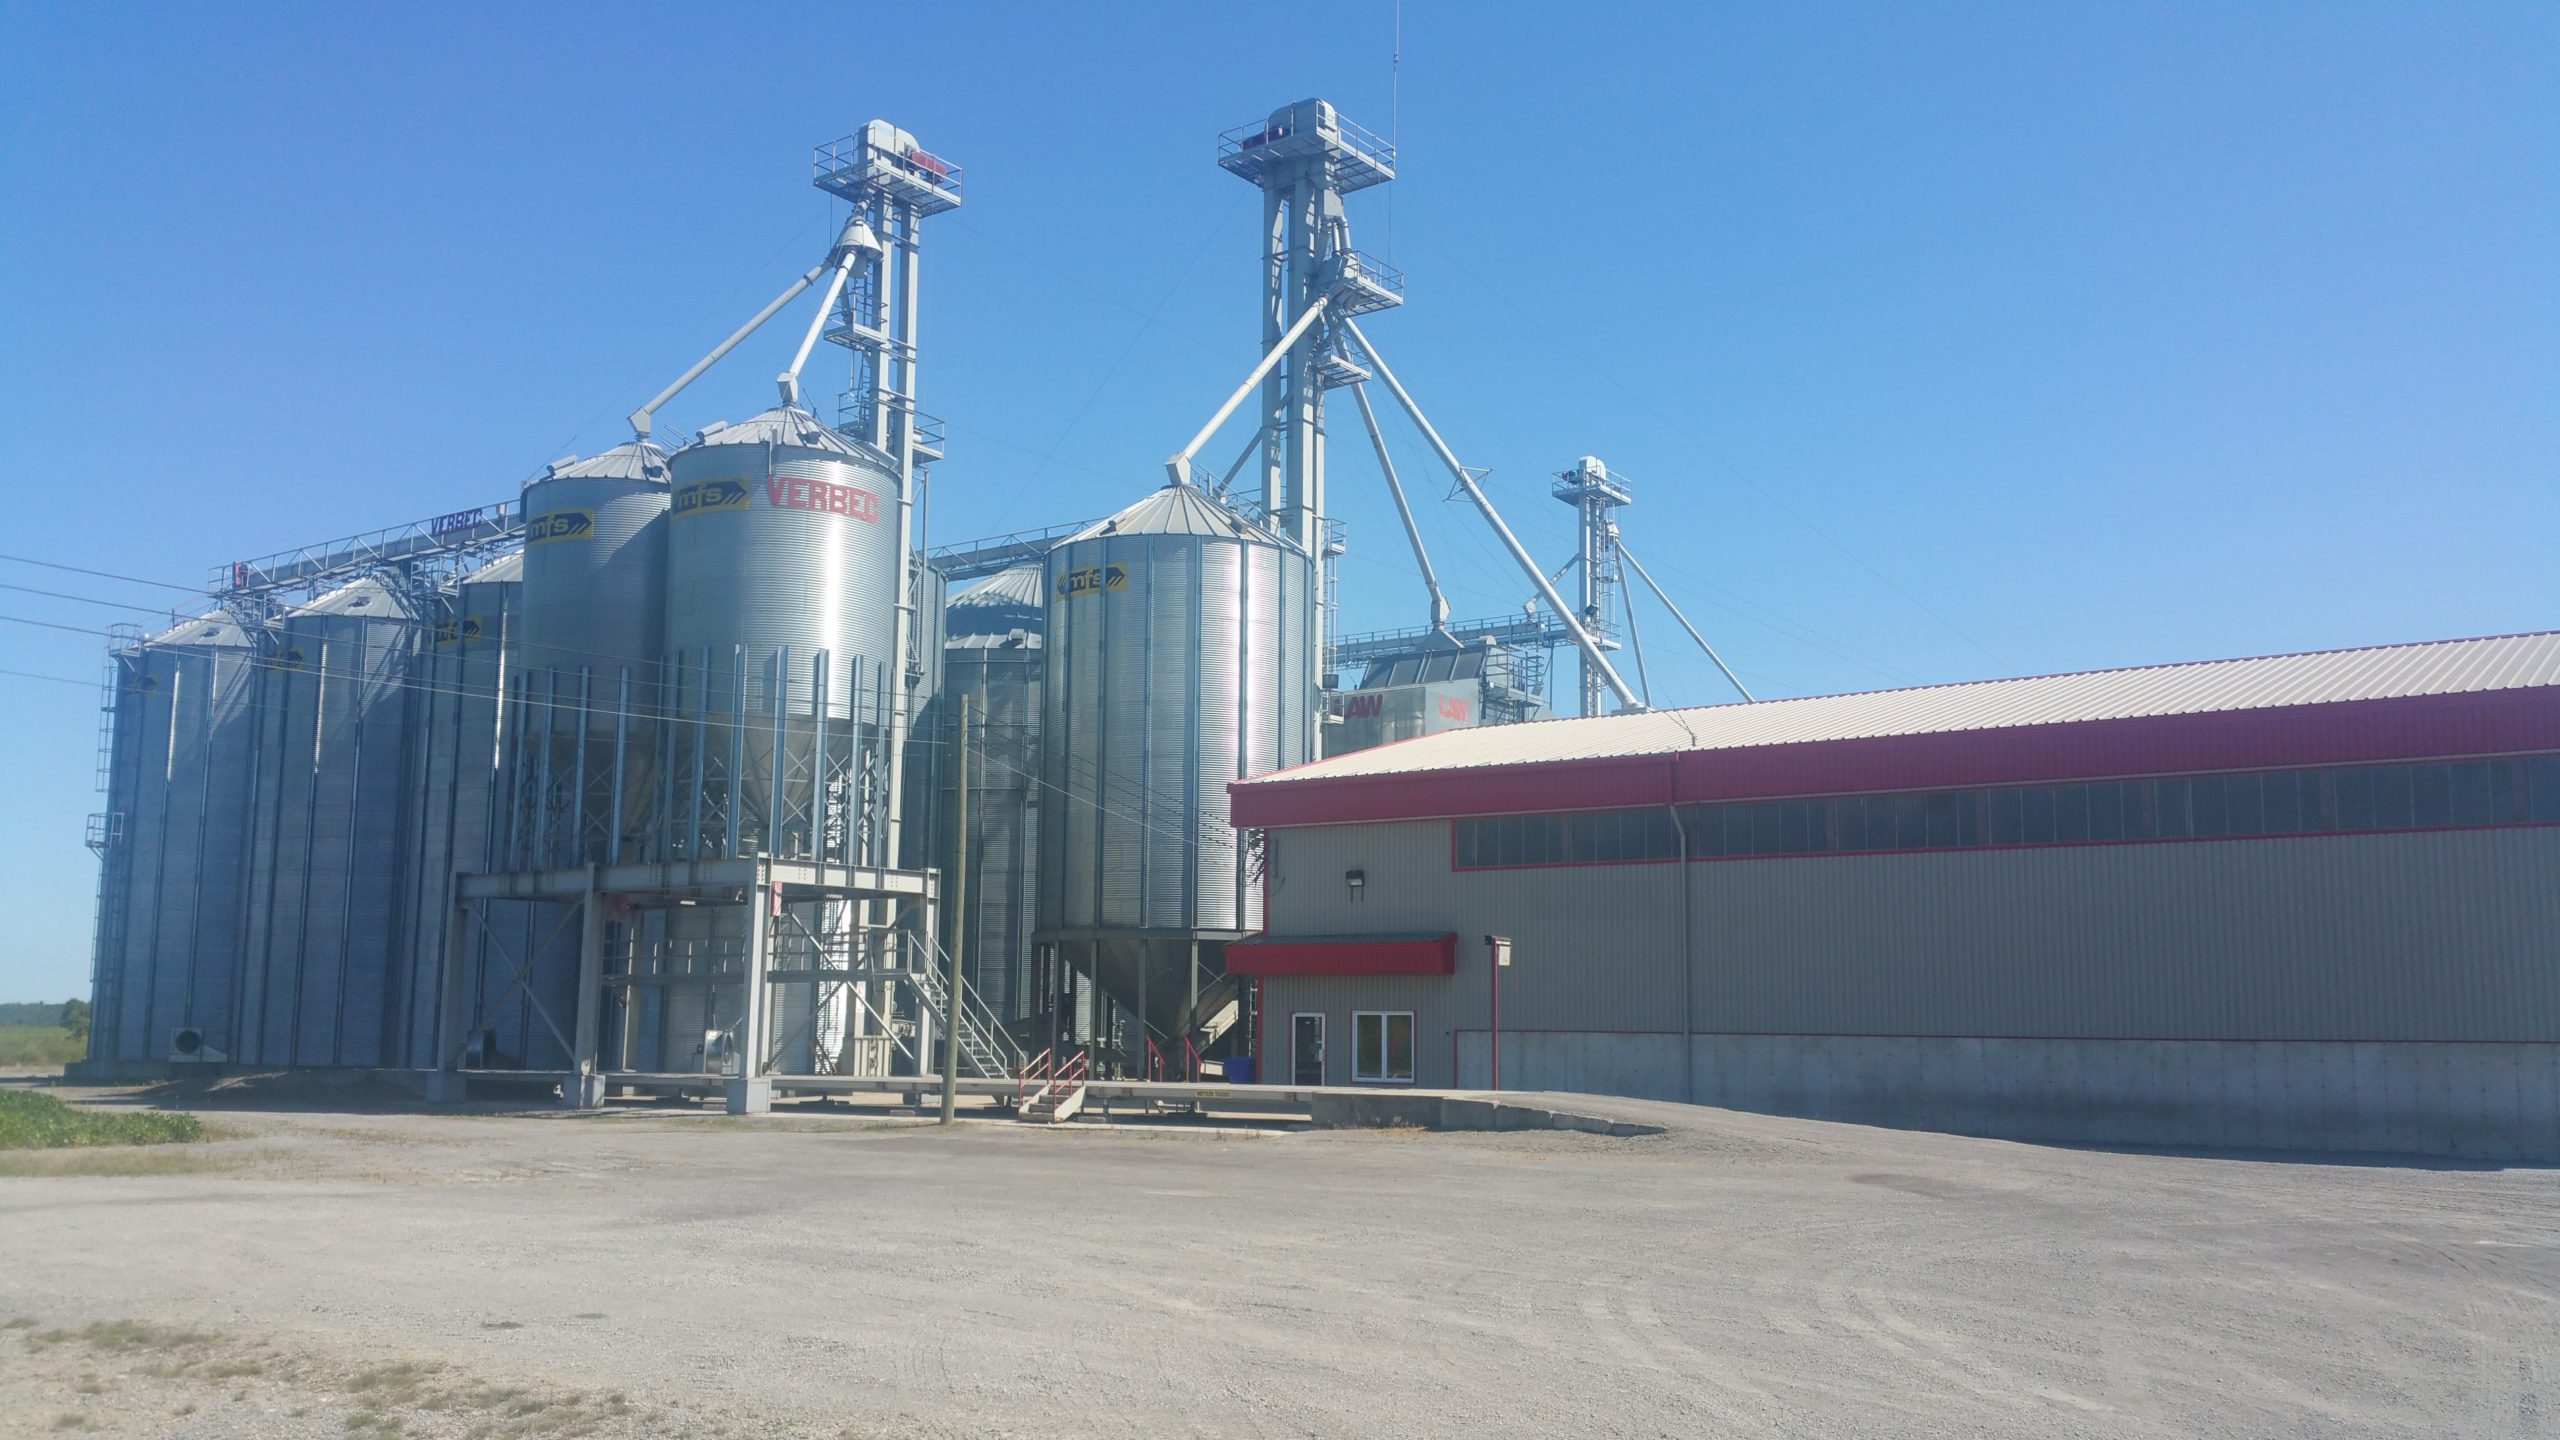 Grain handling yard equipped with a SigmaGrain software system